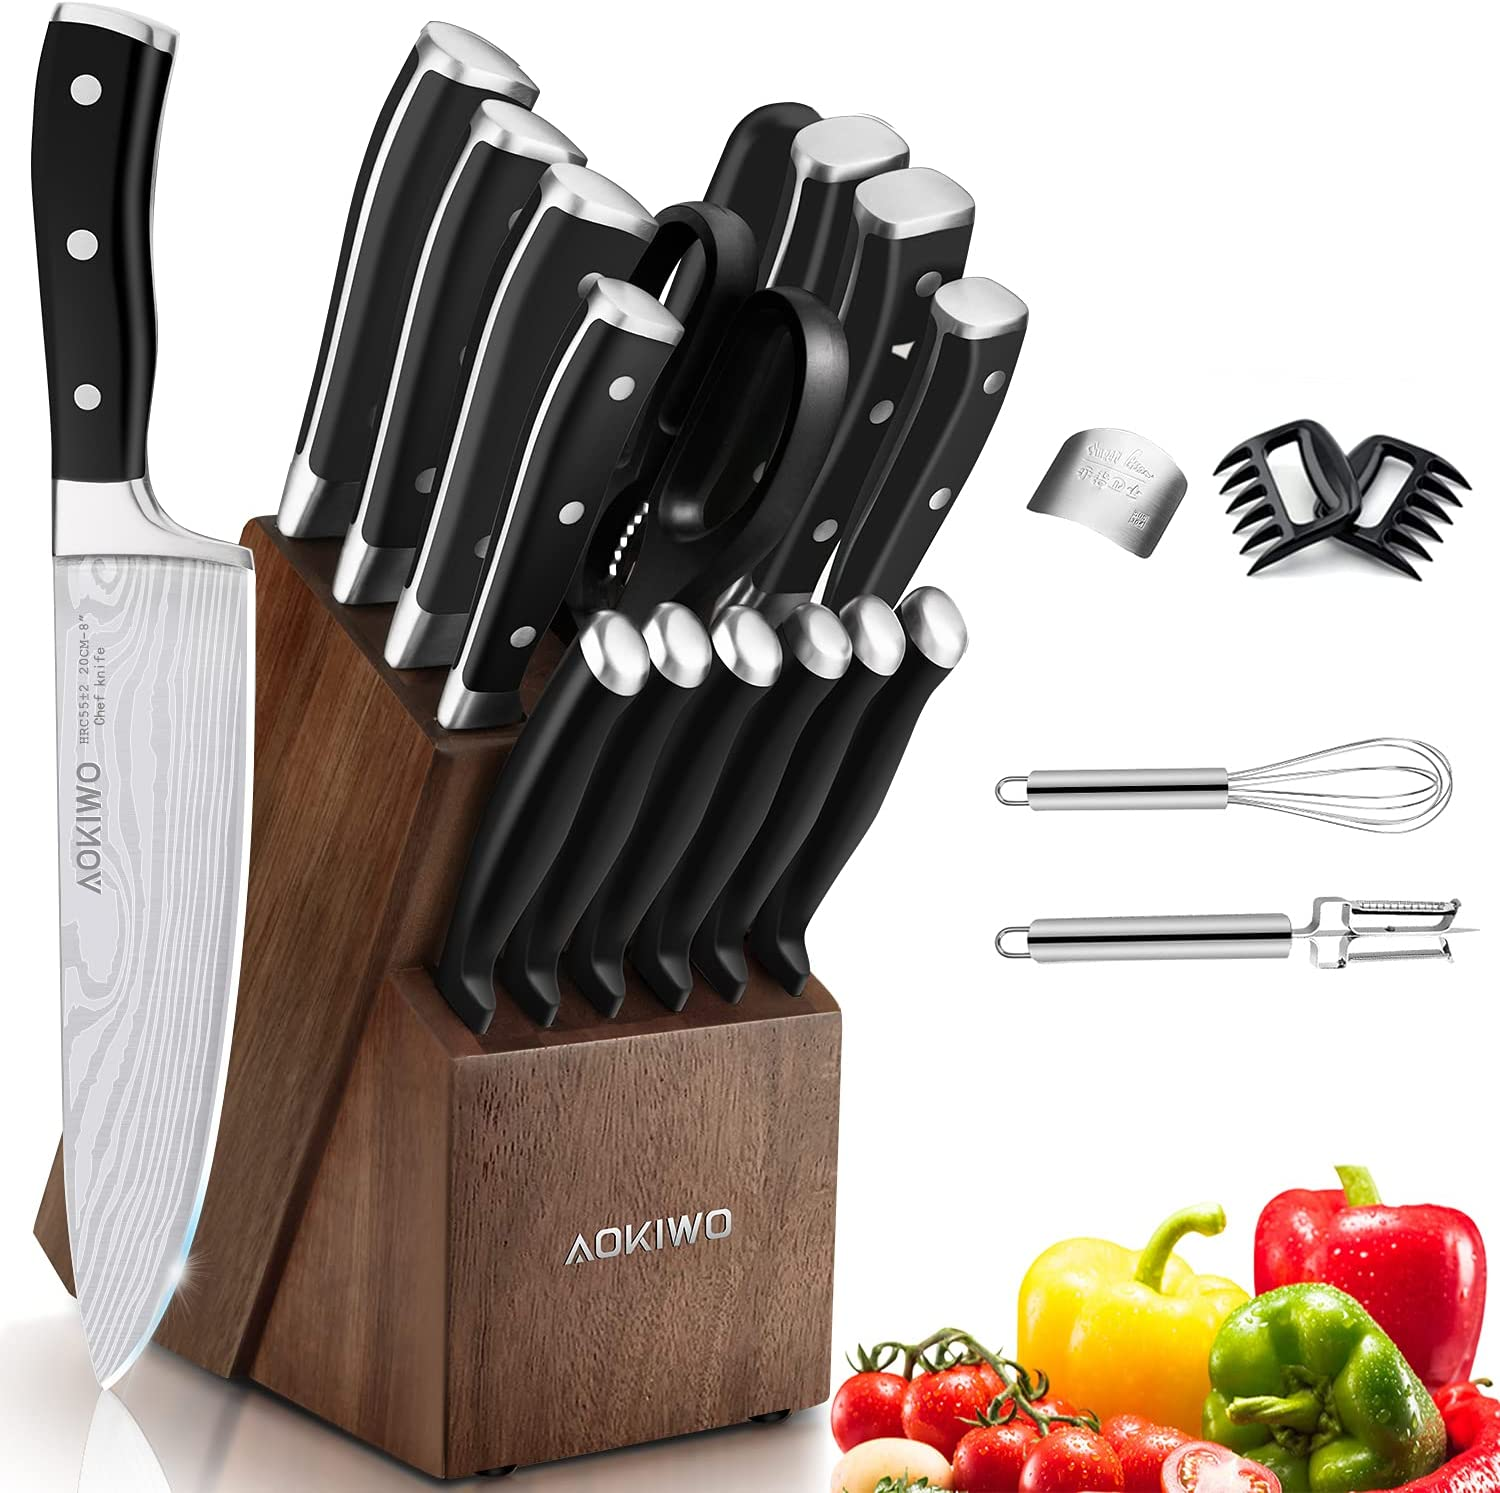 Knife Set 21 Pieces Kitchen with Block German Max 82% Max 82% OFF OFF Wooden